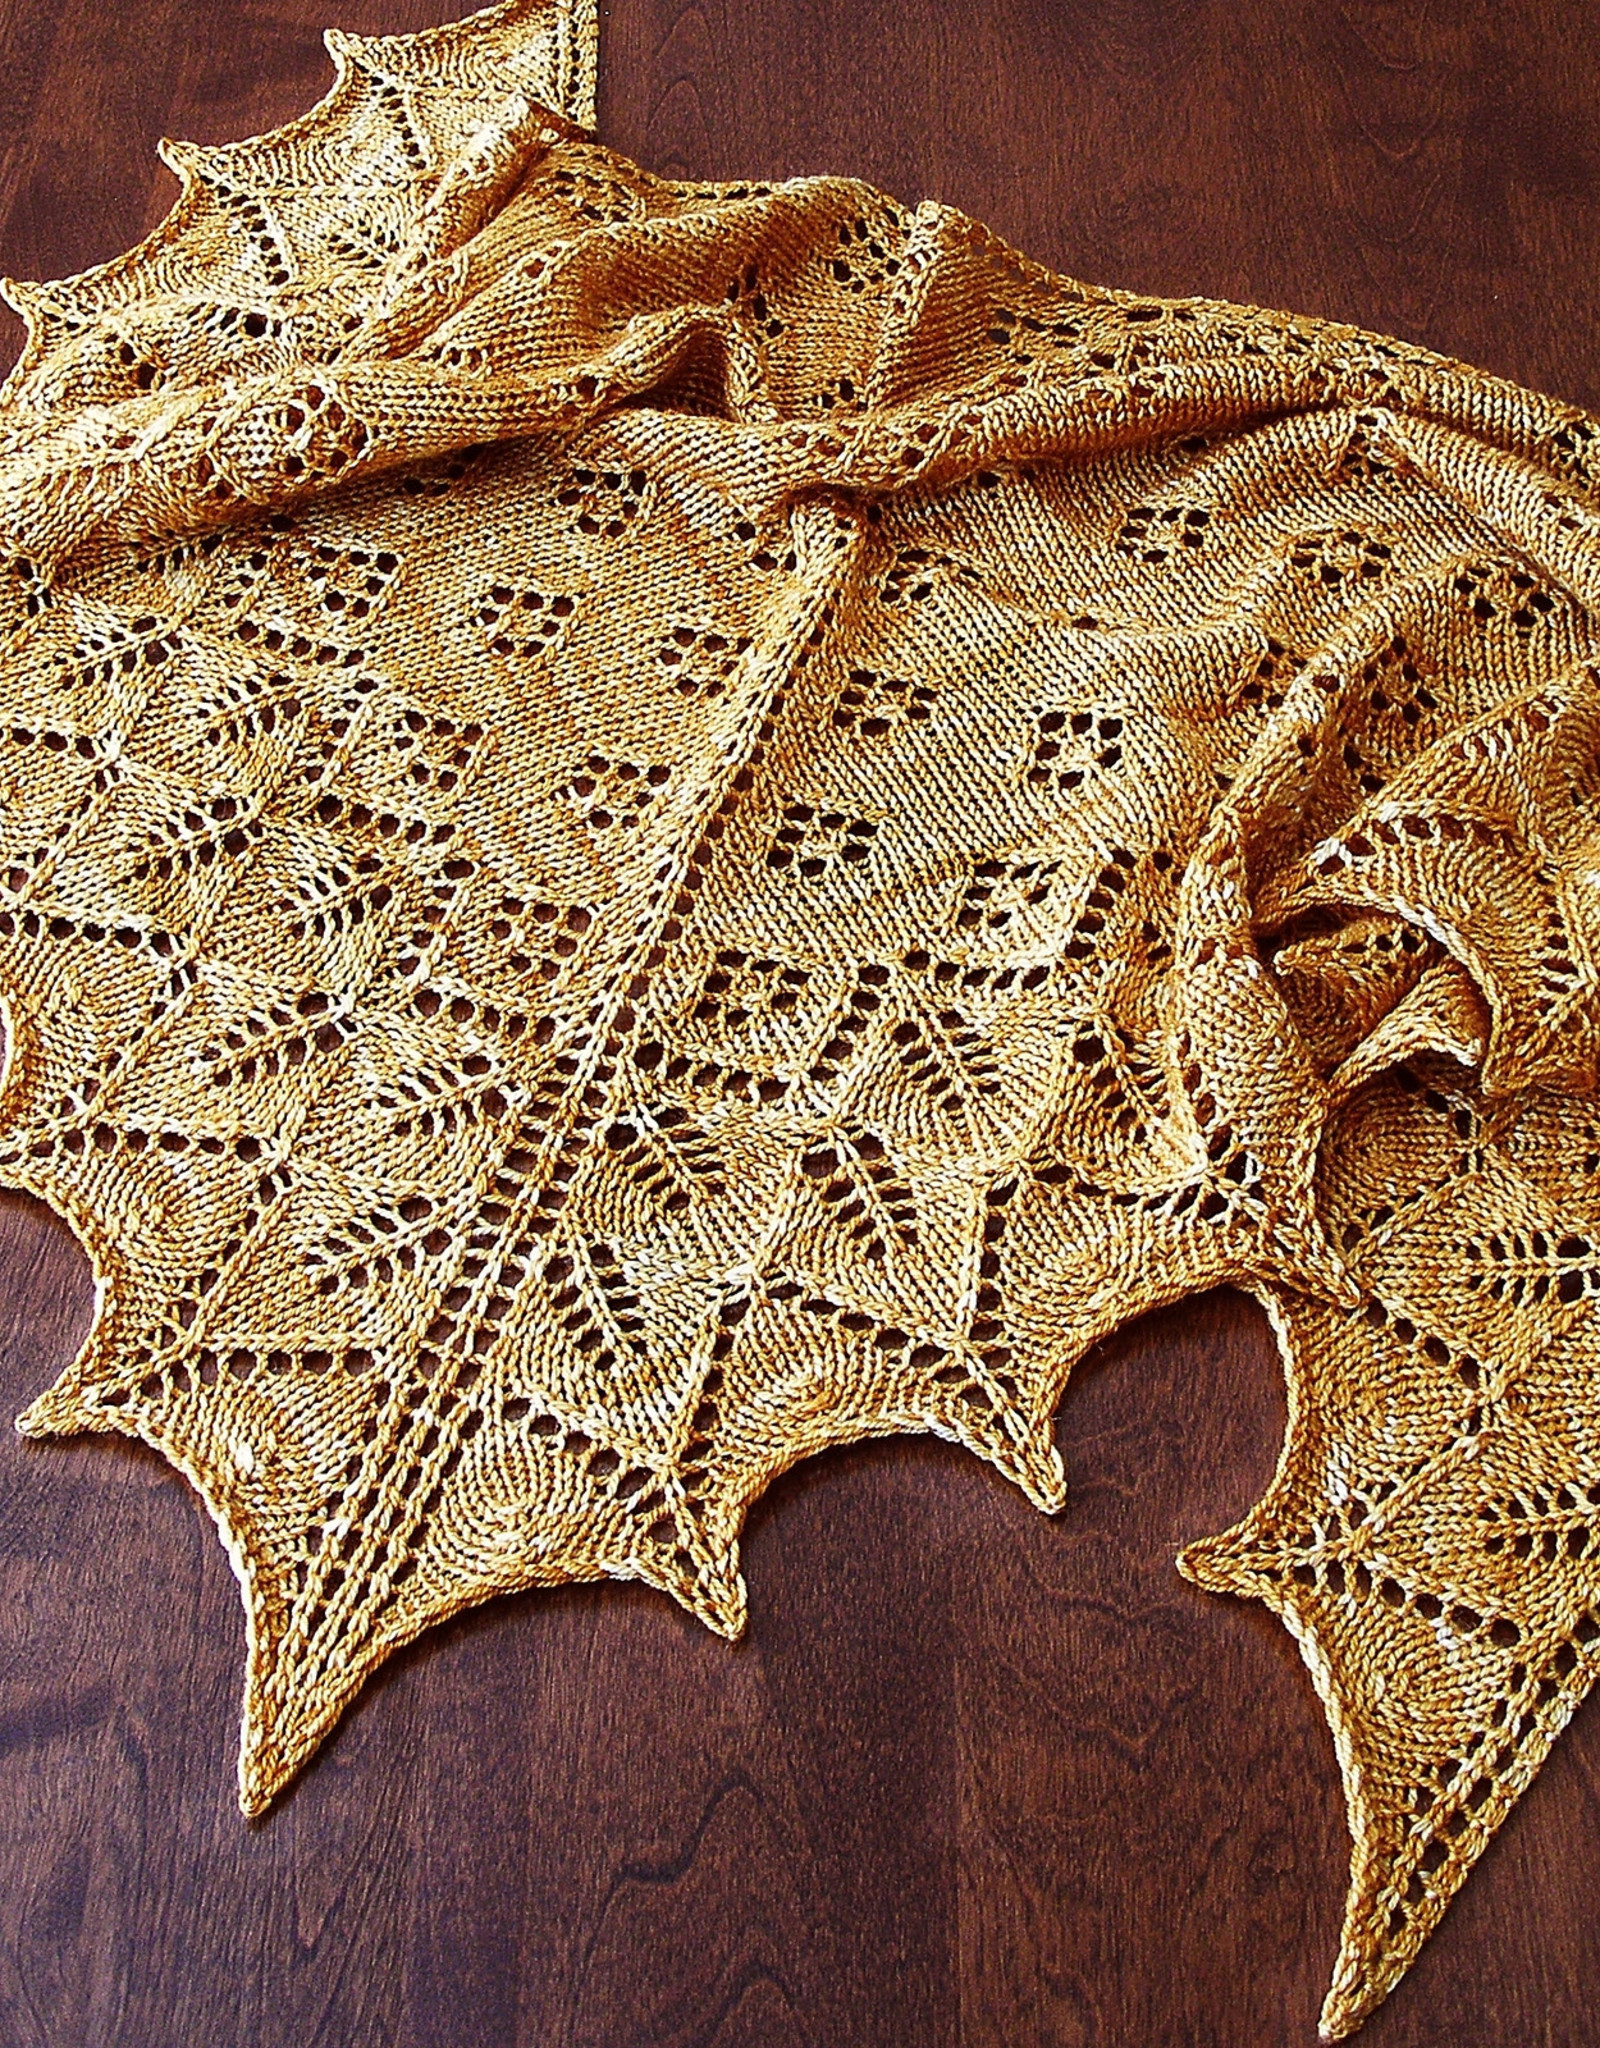 Introduction to Lace Shawls: TU Feb 2, 9 & 16, 7-9 pm